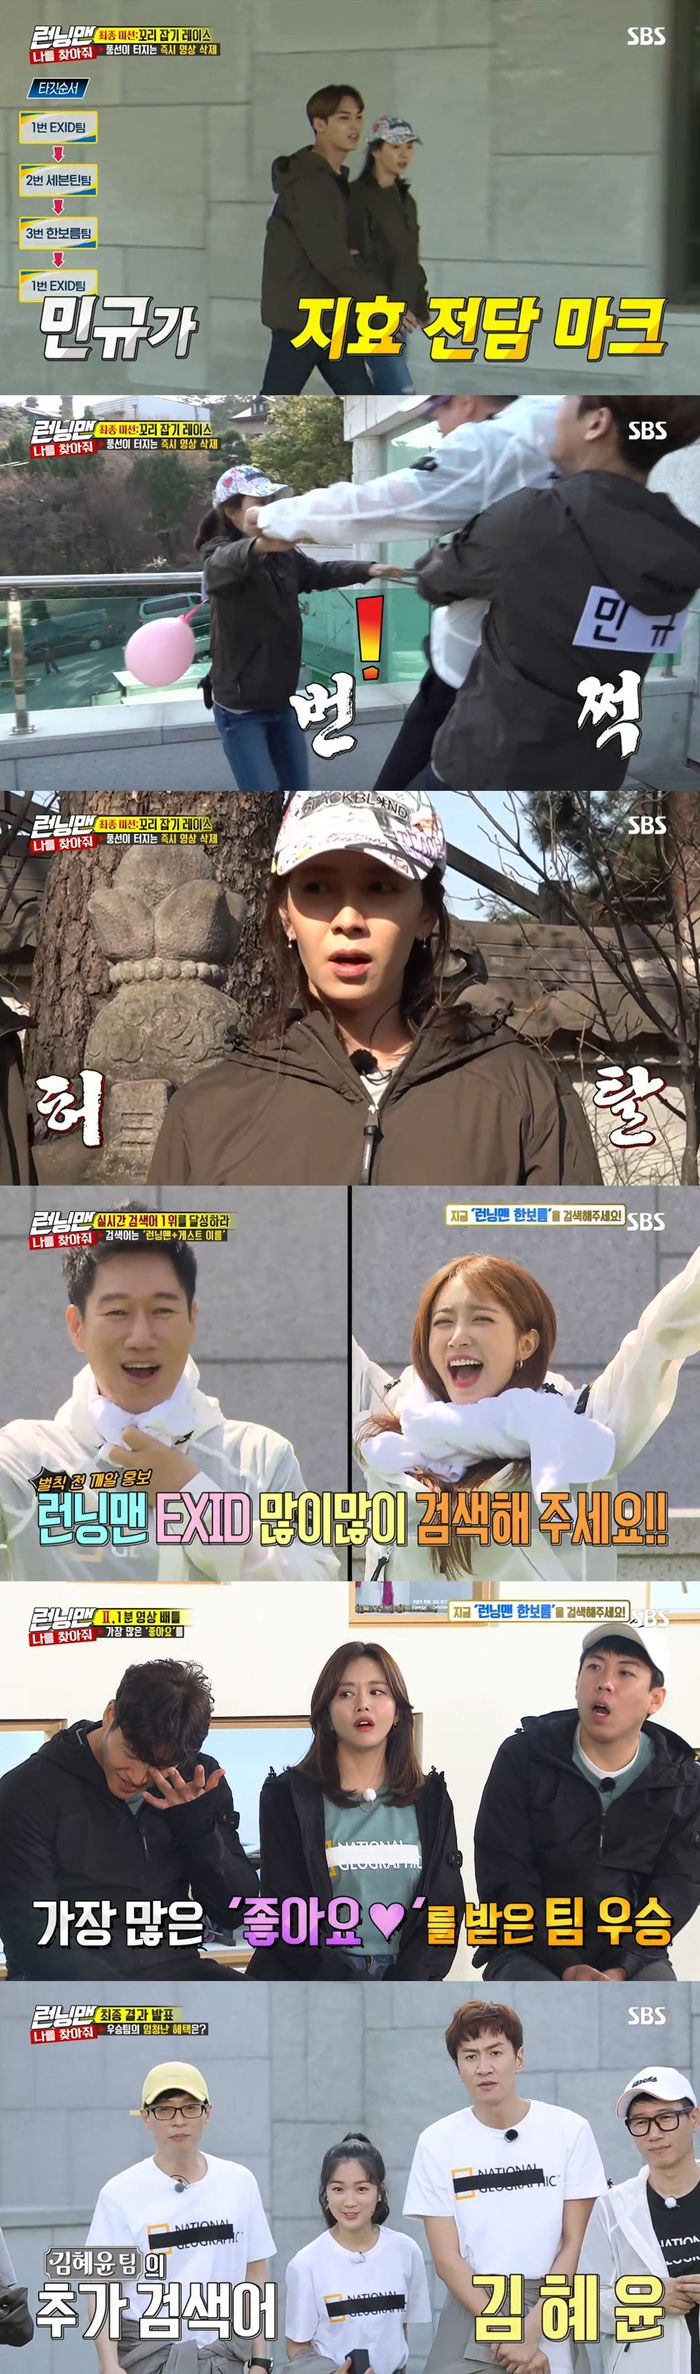 <p> Running Man Song Ji-hyo and Seventeen mark is best 1 minute passport.</p><p>Viewership survey Agency Nielsen Korea, according to the last 21 days will be broadcast SBS Running Manper minute, with a maximum application rate of 7. 1%(the NCR furniture viewership standard)up to soared, and the main advertising officials of the important indicators of 2049 target audience viewership4%(2 parts viewership standards)in the same time period, viewership ranked # 1.</p><p>It is Seventeen of the wins and Lenny, EXIDs Hani and brush, actor Kim Hye Yun, and actress Han Bo-reum guest-starred as real-time Search Term 1 for the war unfolded. Seventeen - Song Ji-hyo, Min together with the sister - brother team scored and Kim Hye Yun, Yu Jae-Suk, Lee Kwang-Soo team up with, Han Bo-reum - Kim Jong Kook, both for feel and for guys. EXID is a gem, and one boarded the ship.</p><p>These are total three rounds and real-time Search Term 1 Above must achieve to win the game started. The first round of those days Chart # 1was. From 1993 to 2018, the popular charts No. 1 song hit of the game as the clumsy team of the water when the bomb baptism was right.</p><p>Kim Hye Yun is a water bomb to cotton in order to hid their dance skills unfold and the quiz began. But where shapeless dancing skills on Yoo Jae-Suk and Lee Kwang-Soo not to talk about it, but did, well thought.said Kim Hye Yun, surprised to laugh, I found myself. The fight at the end Han Bo-reum team that chartthe winner it became the top of the screen on Running Man Han Bo-reum, please search forthe phrase that takes the benefits gained. 2 for Team Seventeen team, the 3rd place team Kim Hye Yun team is accounted for and water cannons penalties are foraging bracelet online EXID team went back.</p><p>Second round team stars 1-minute promotional video produced by Running Man Official SNS the most many like Can the team win the battle. Kim Hye Yun team of Solo choreography from Sky Castle cheat for smoke up our hunters attention, but a variety of factors captures. EXID team is Hot Pinkto fit the choreography and fun filled fancam video produced and Seventeen team or dance challenge. Han Bo-reum team is Kim Jong Kooks Golden contacts to take advantage of GOT7s Jackson, from the begging until the top of the star and of the instantaneous telephone connection to film.</p><p>Finally, the promotional video for the deletion of the dry tail to catch the start of the race. The tail of the balloon popping moment in the SNS elevates the promotional video will be deleted and your like Count is finished, the mission was. Kim Hye Yun team Han Bo-reum team by the first balloon is removed and eliminated. Left alone with Song Ji-hyo is the analysis of the photo, as the balloon will burst first or Seventeen mark with the help of above all. But until joined by Song Ji-hyo to hold on for the two teams, the front of the bout unfolded. The Civil new moon to support analysis, to prevent and Song Ji-hyo, the Scarecrow had Song Ji-hyo of the balloon on a twig hanging back to give off to were eliminated. This scene is per minute, with a maximum application rate of 7. 1%and the best 1 minute.</p><p>Tail grab the races Final Winner Han Bo-reum team. However, the tail grab the first eliminated as the first was deleted Kim Hye Yun teams video to 23,061 one of the best good to be acquired. Winner Kim Hye Yun team on Running Man Kim Hye Yun in addition to Kim Hye Yunadd search terms to one or more provided.</p><p>Real-time Search Term 1 for the final winner of this day until midnight of the real time search to aggregate the determined, 5 on the 5th day of broadcast in public.</p>